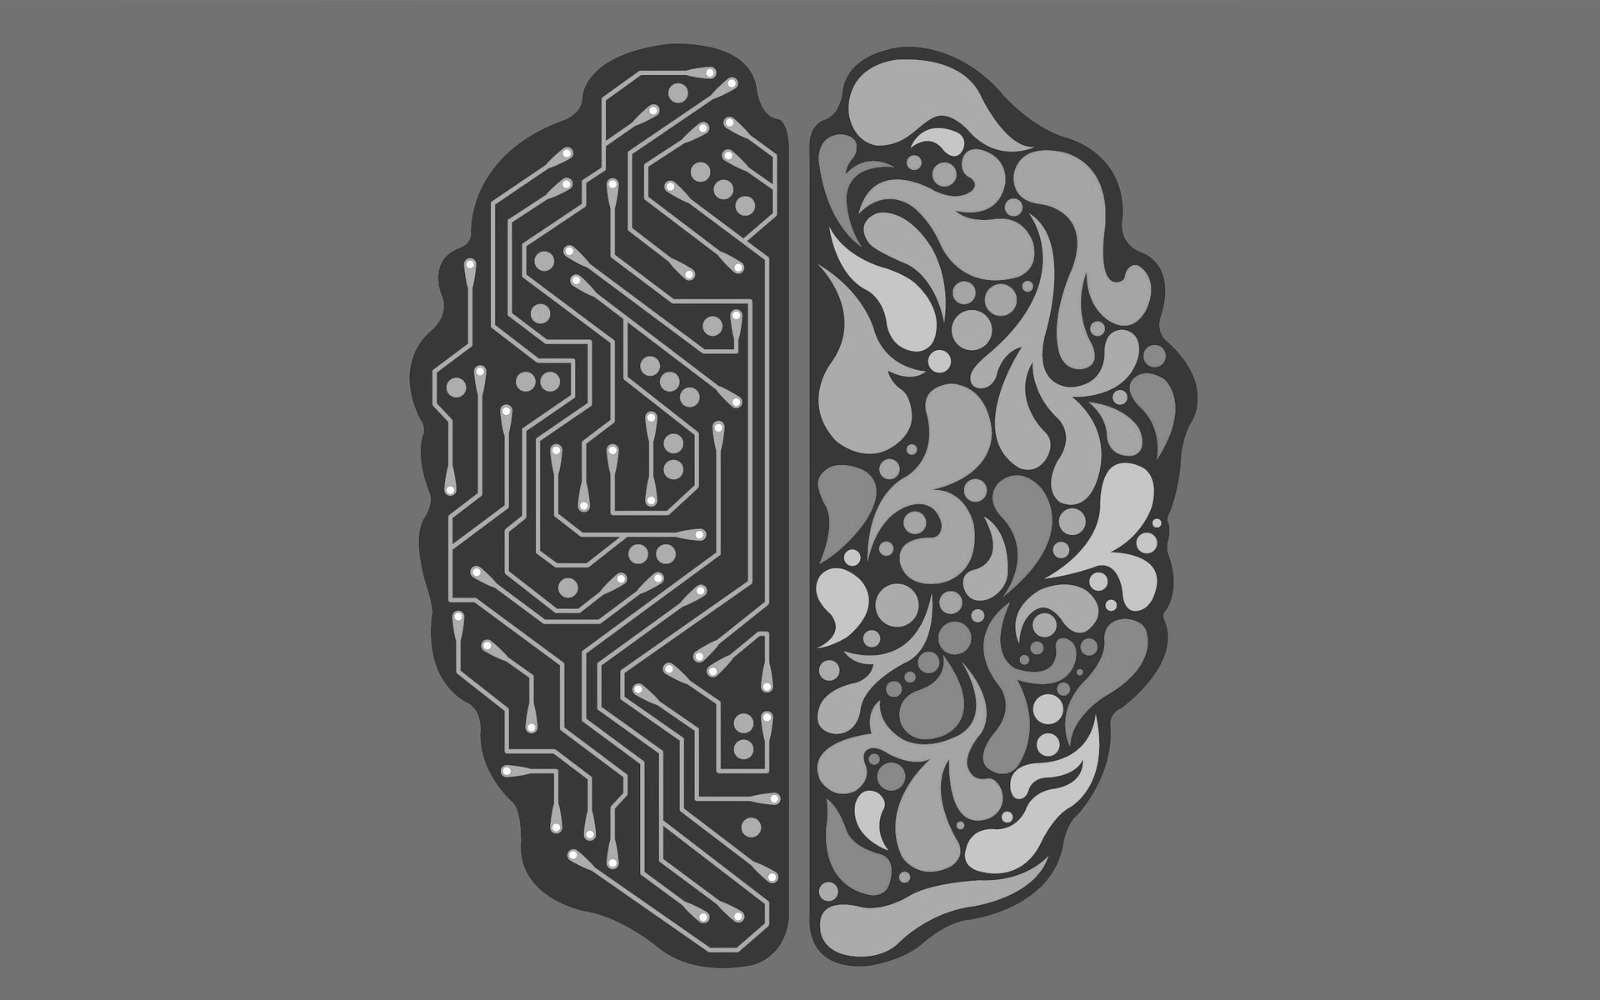 Machine Learning Data Extraction